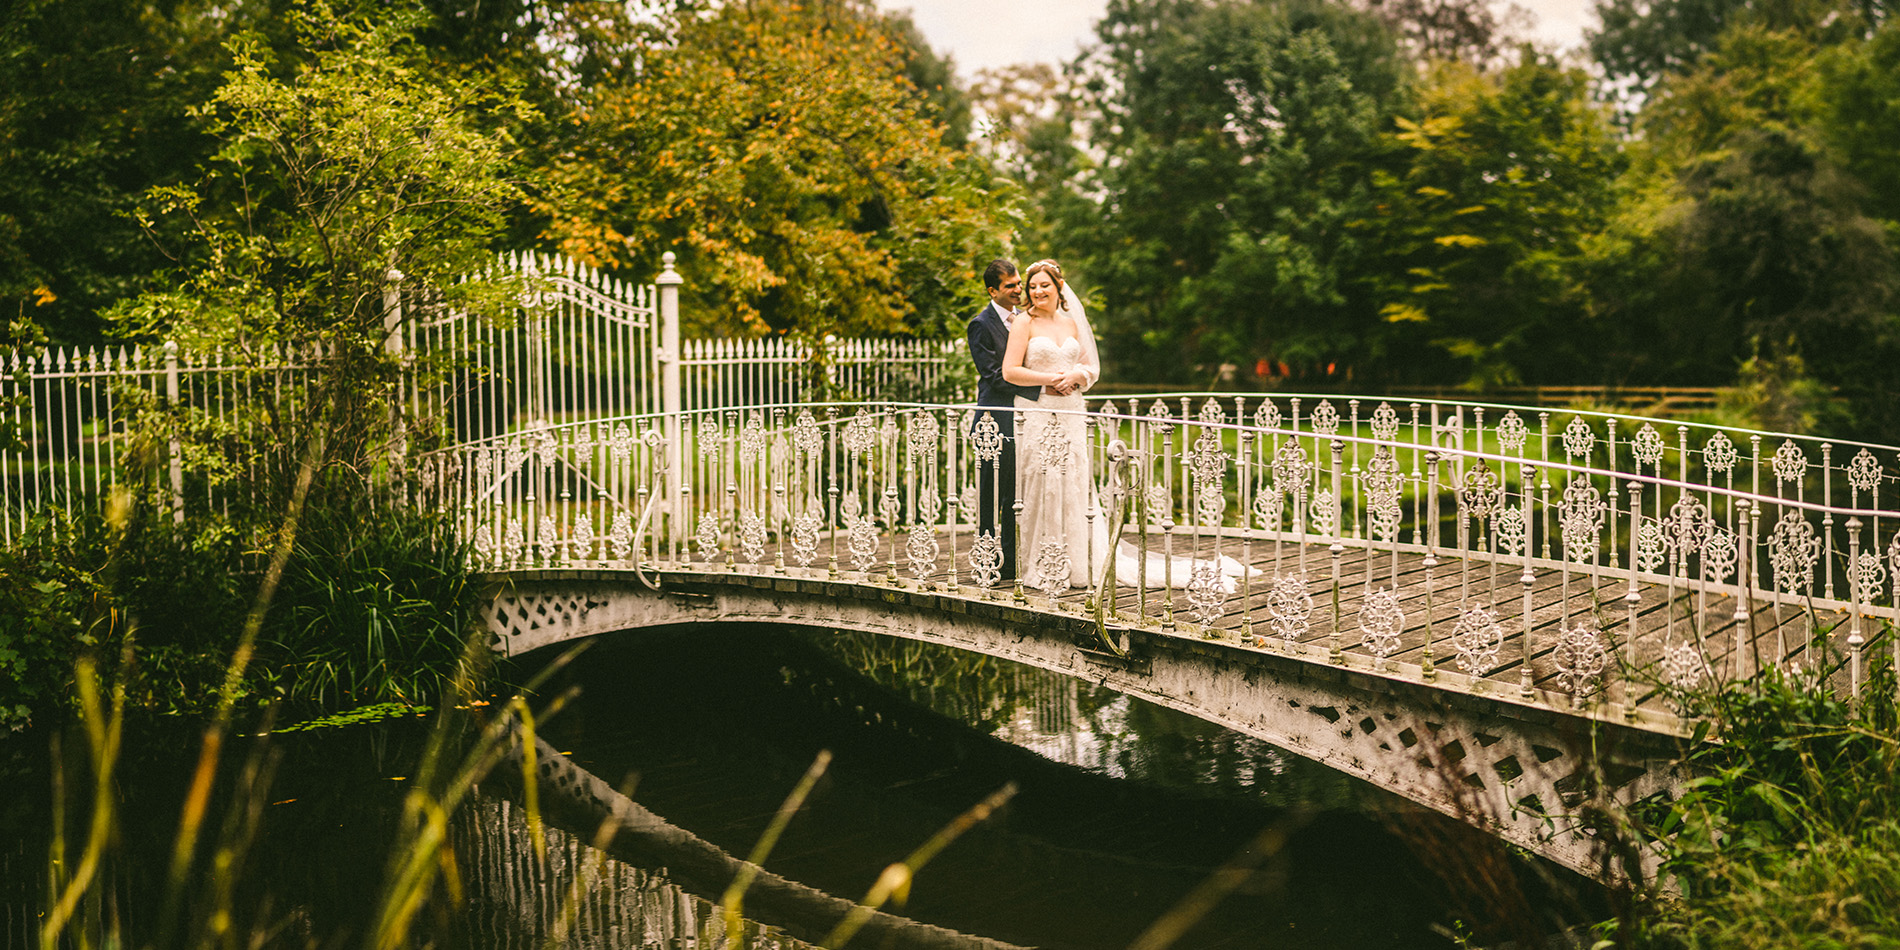 Vicky and Lalit's real life wedding at Morden Hall in London